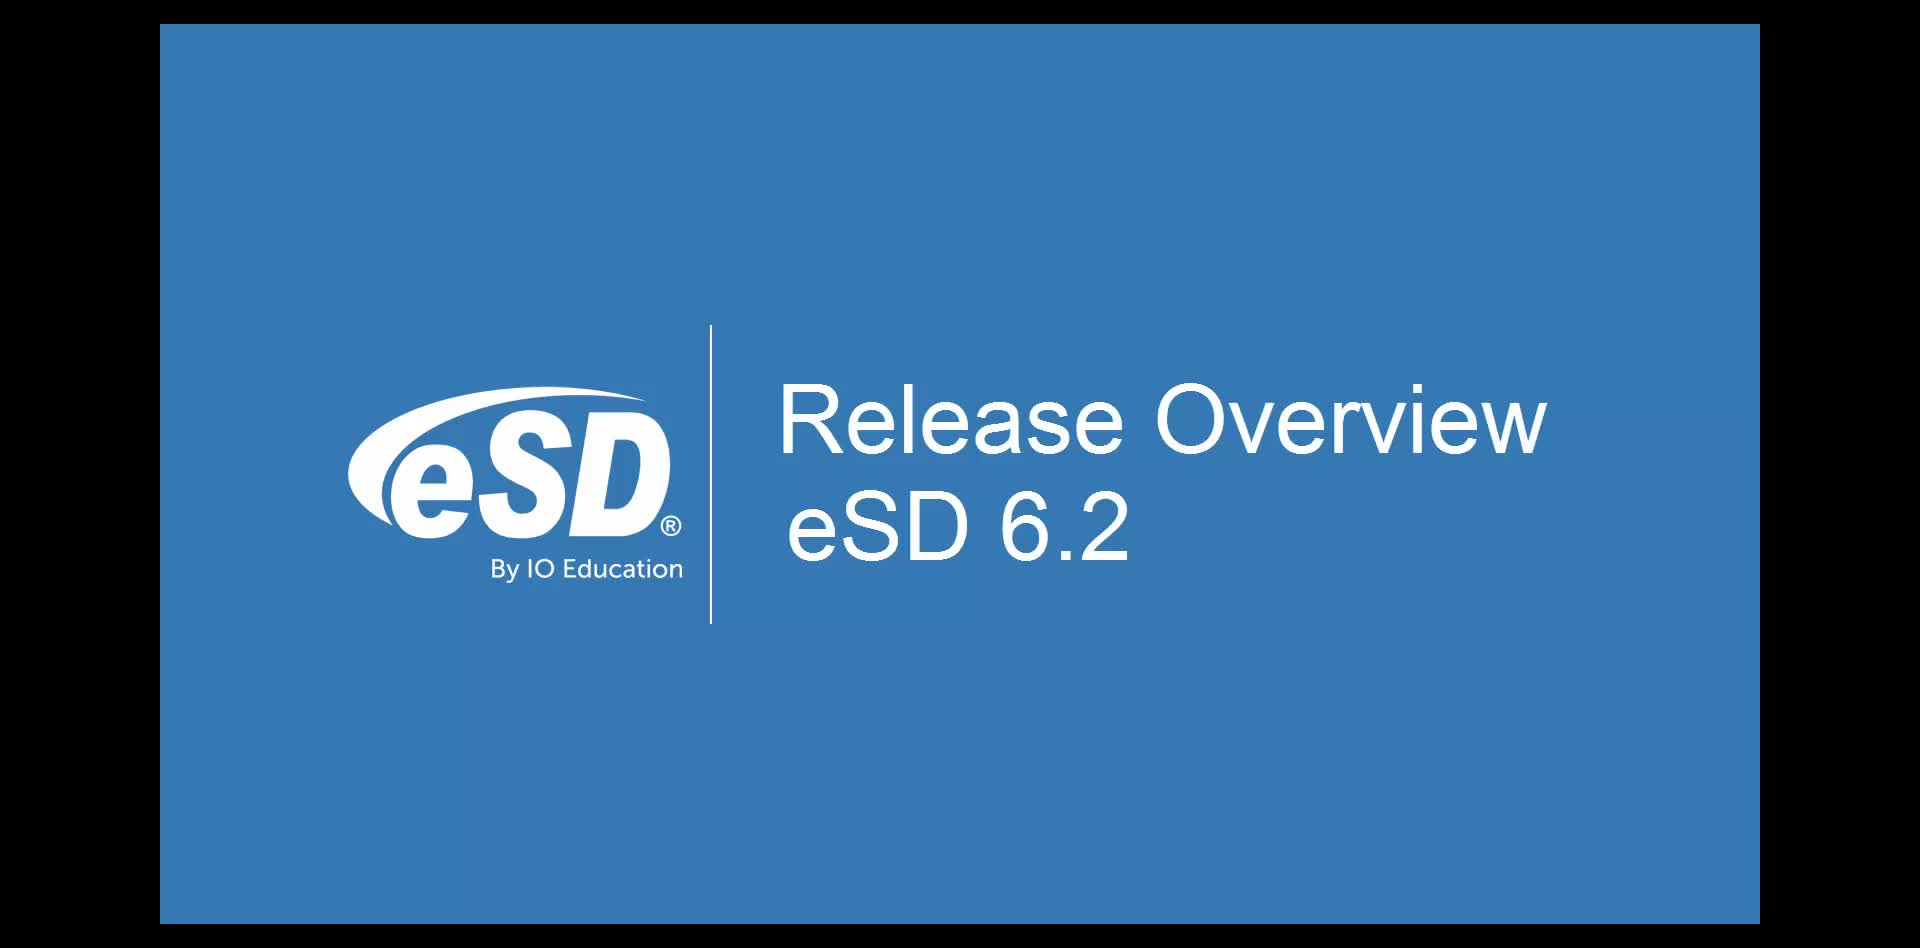 eSD 6.2 Release Overview